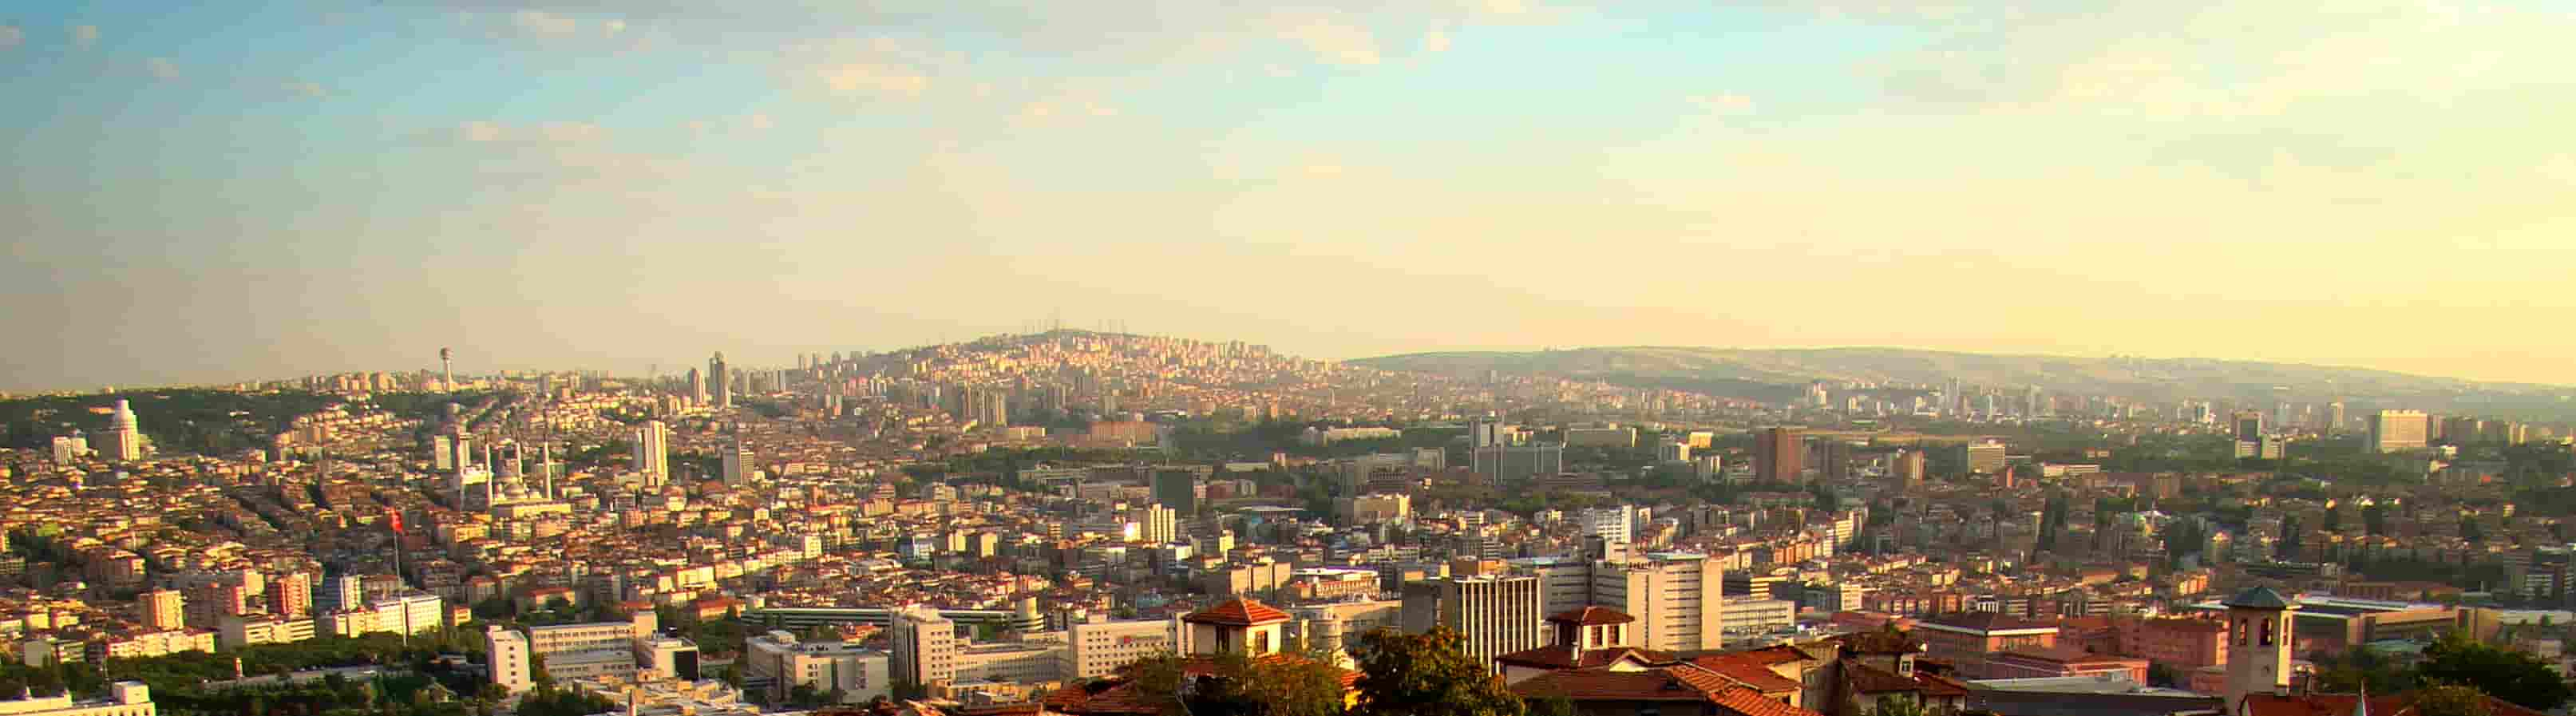 Skyline over Ankara